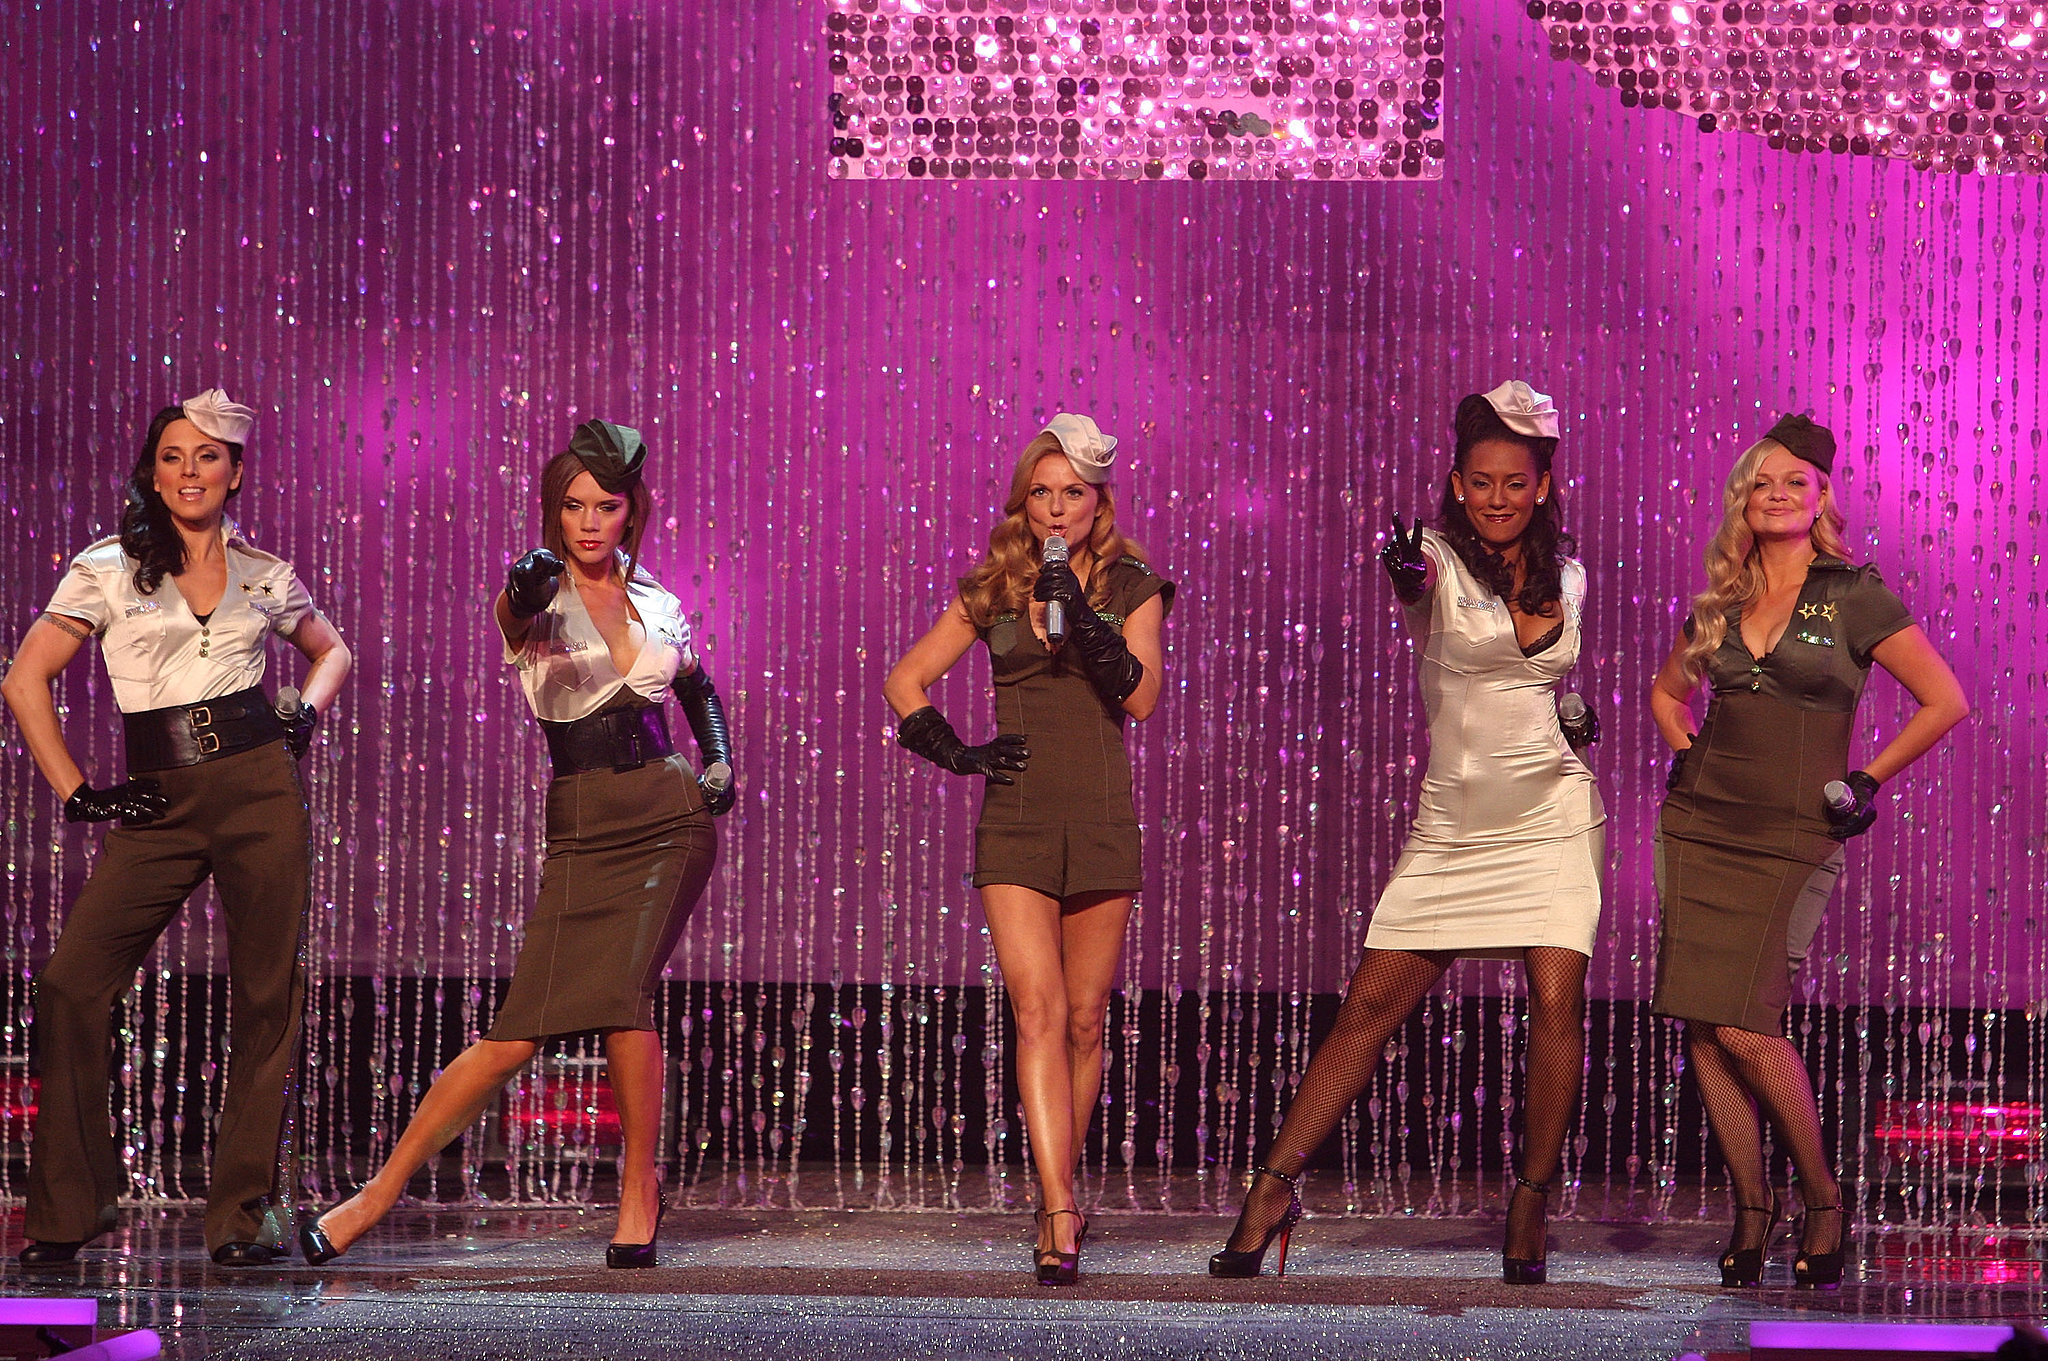 The Spice Girls made a pit stop during their reunion tour to perform on the runway in 2007.